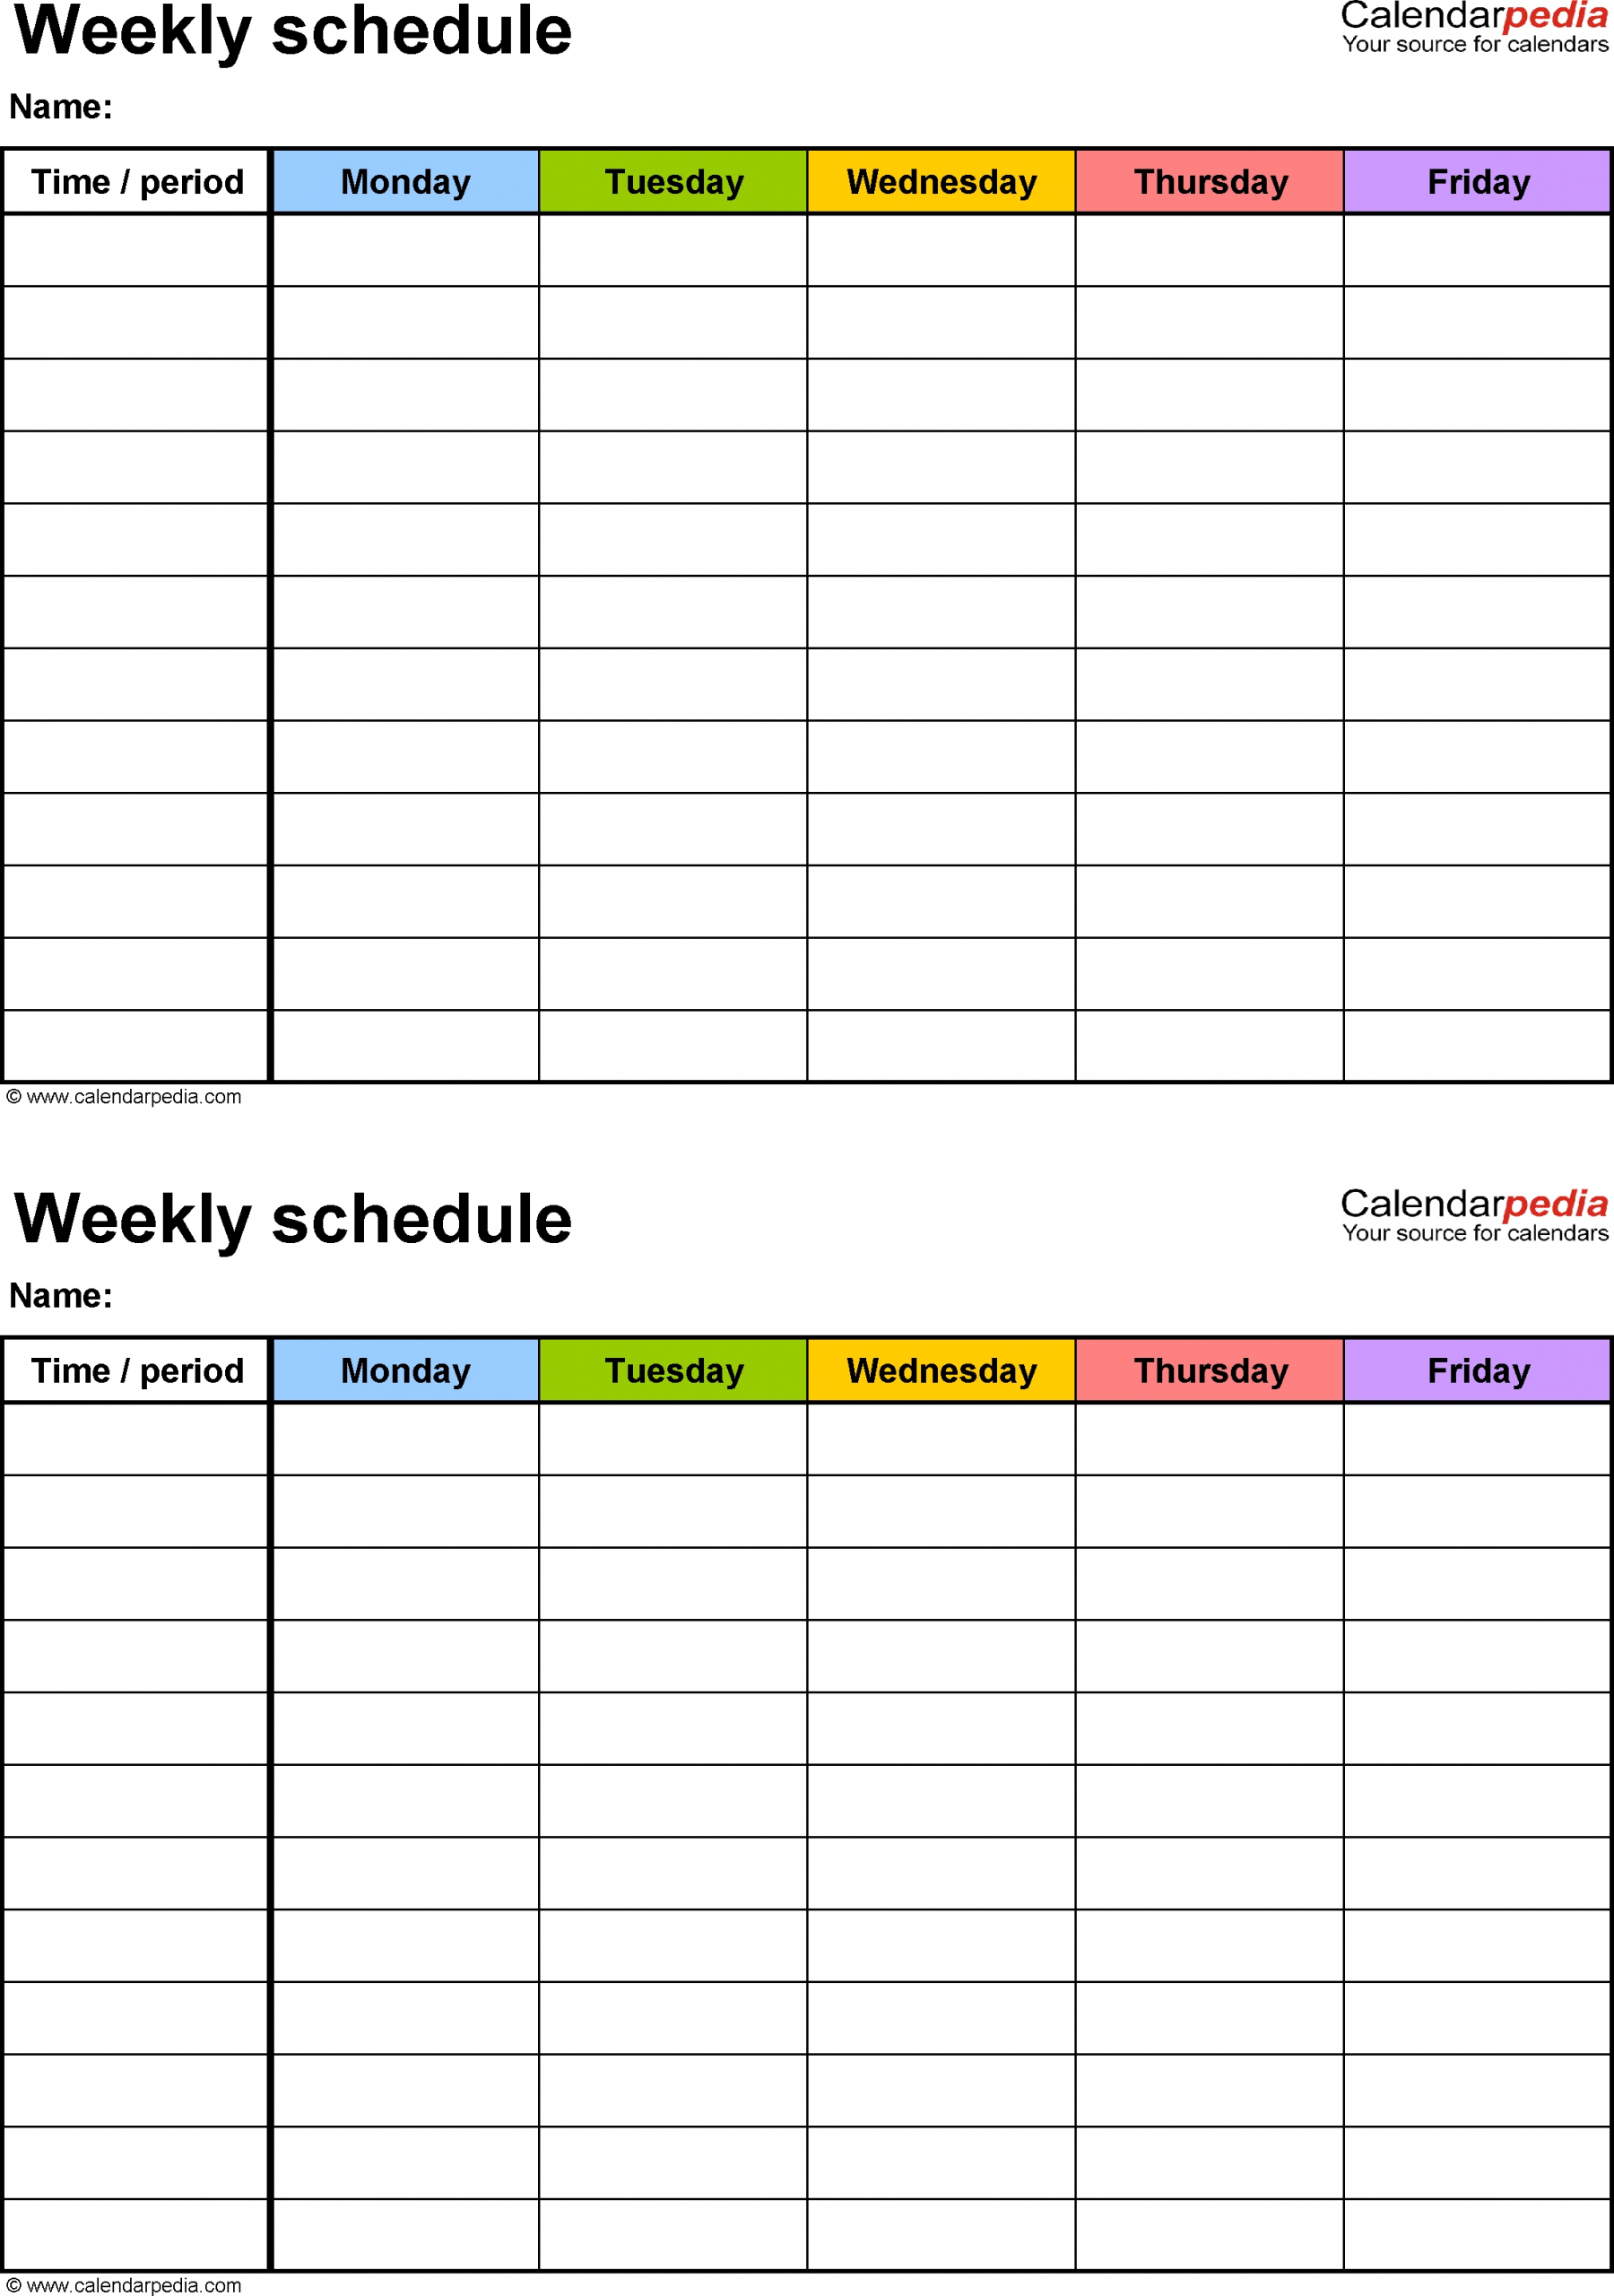 Monday To Friday Monthly Calendar Template   Calendar Monday To Friday Calendar Template